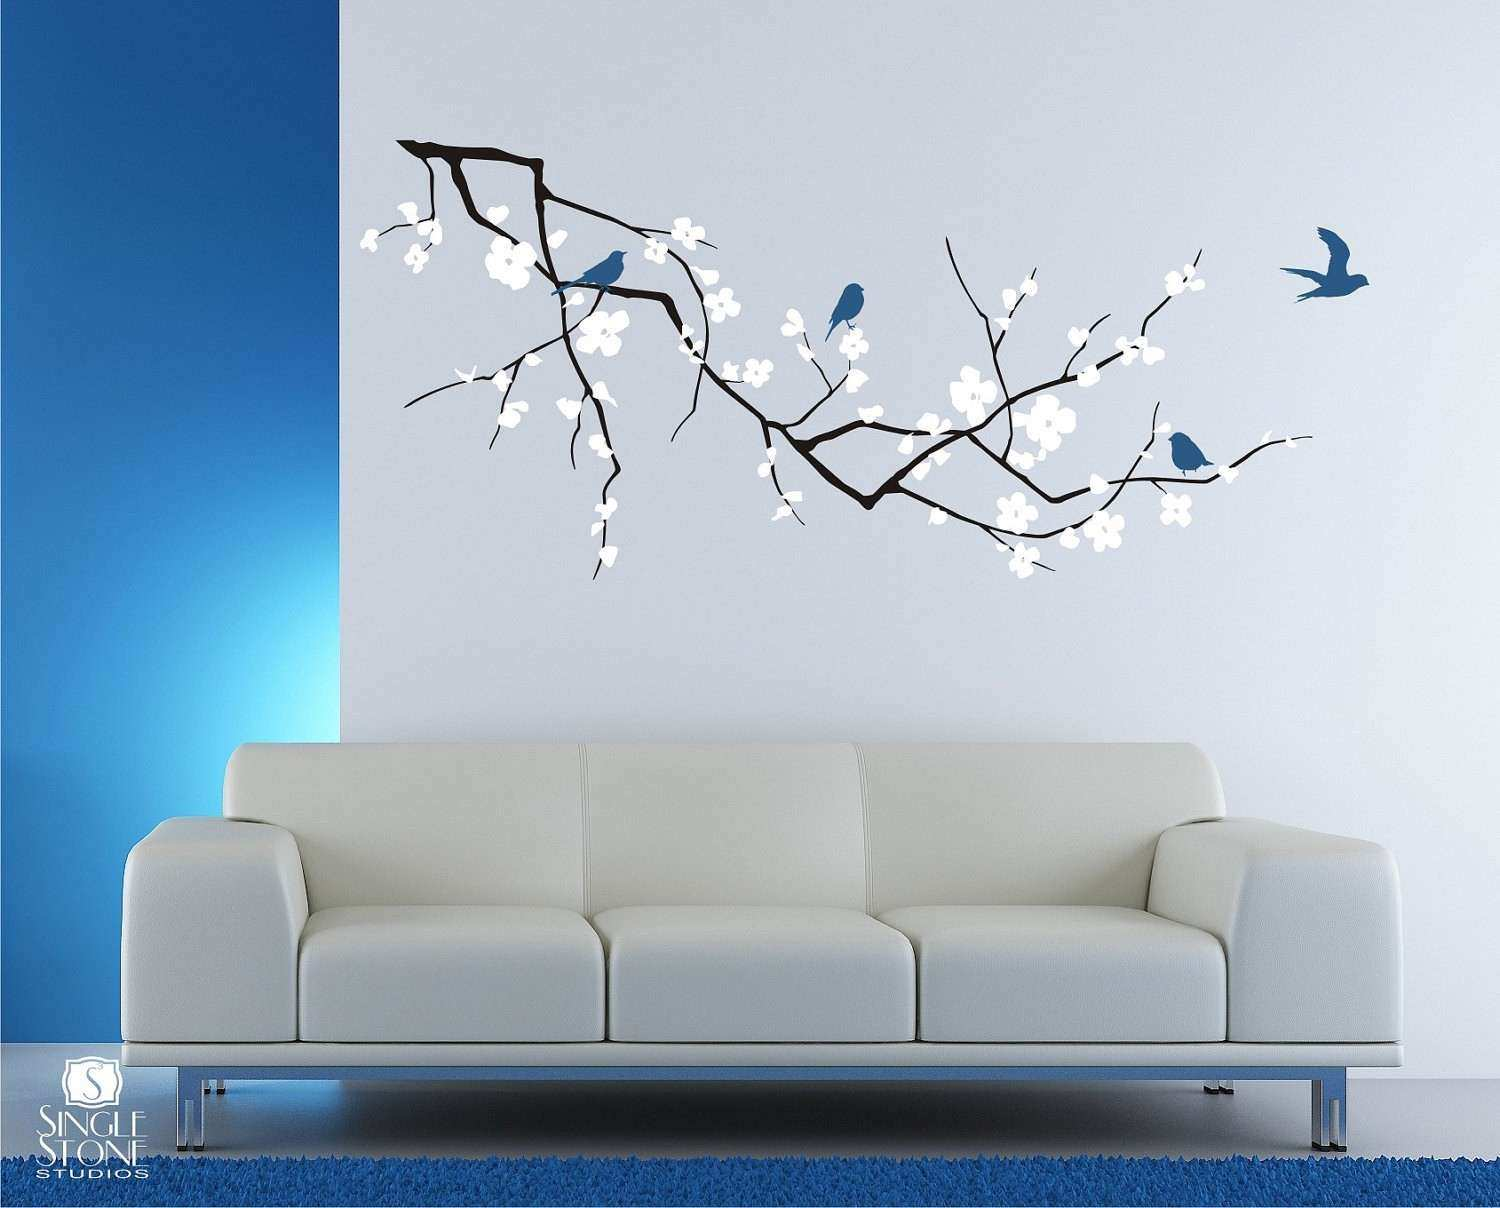 Wall Sticker Art New Cherry Blossom Tree Branch Wall Decal With Birds Vinyl  Wall